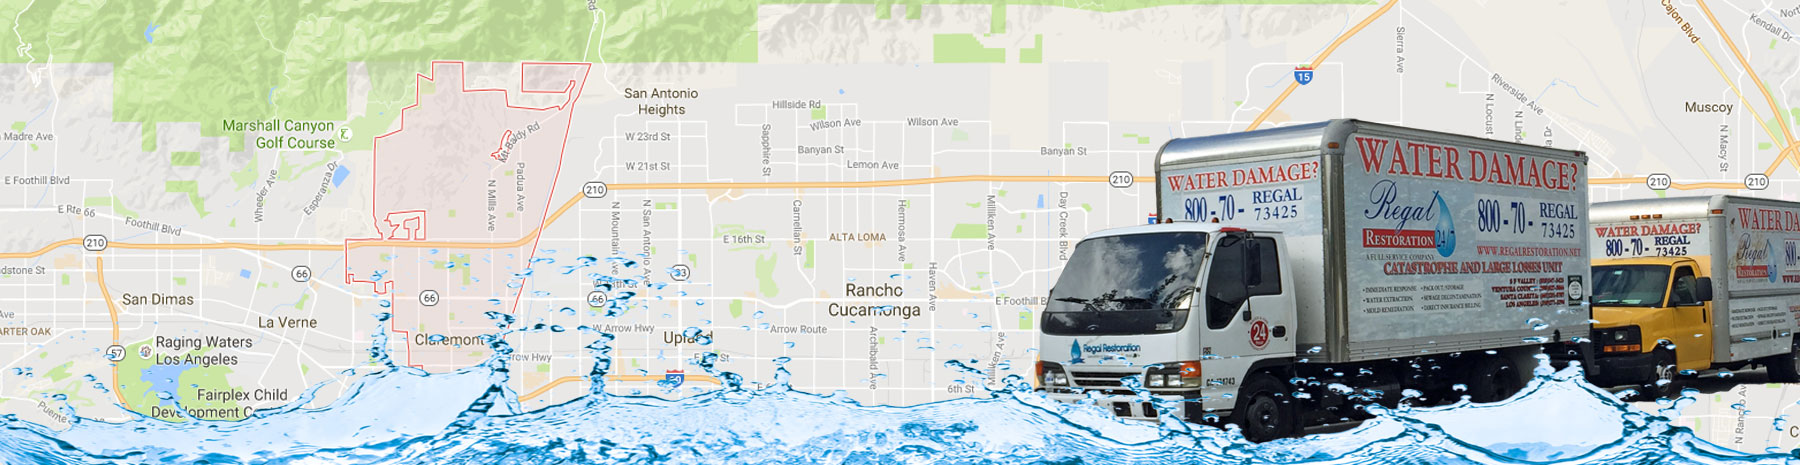 Water Damage Company Claremont, California